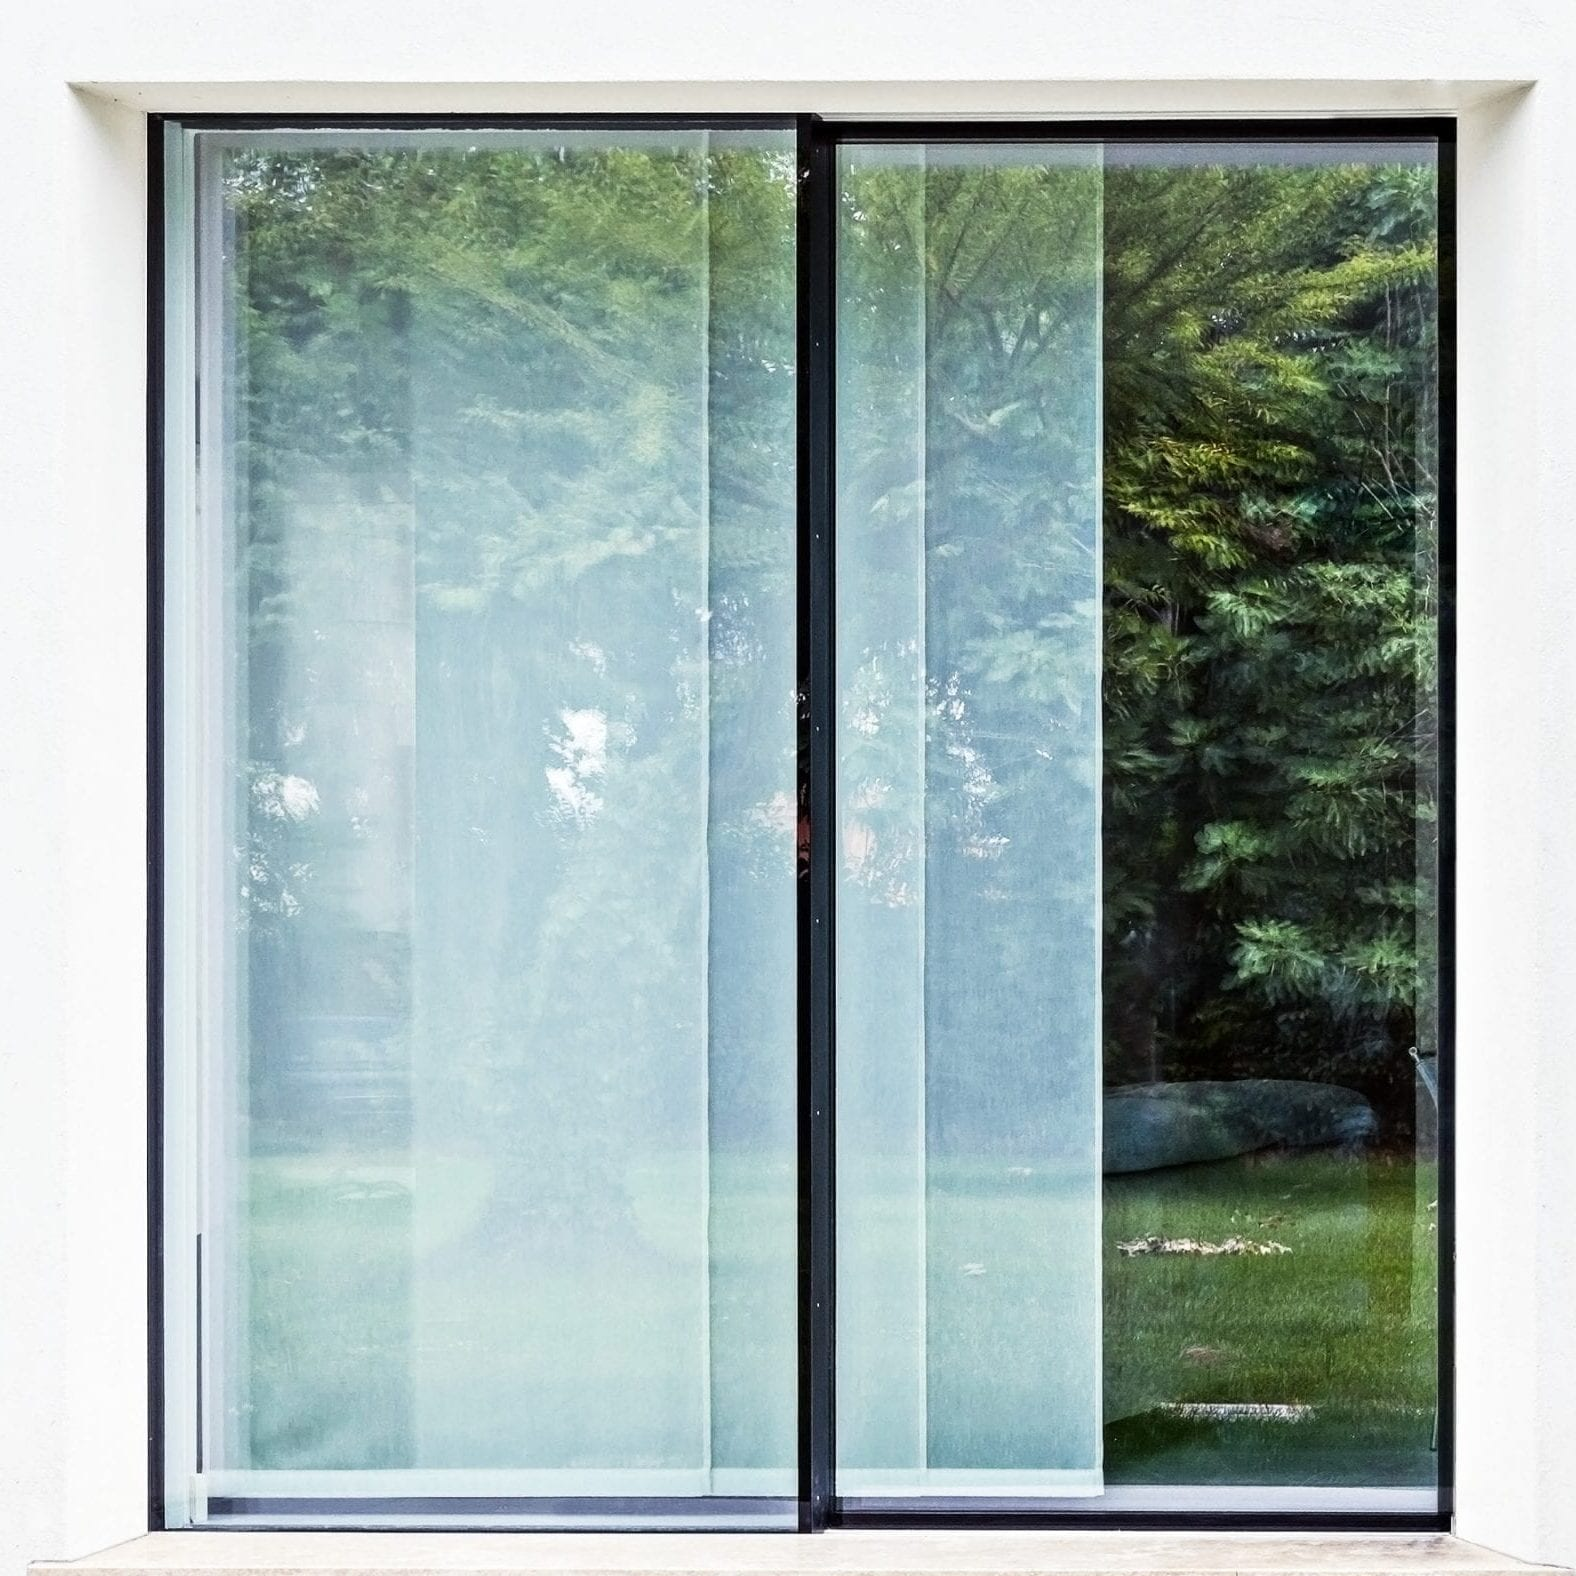 TOTAL GLASS MINIMAL FRAME SLIDING DOORS